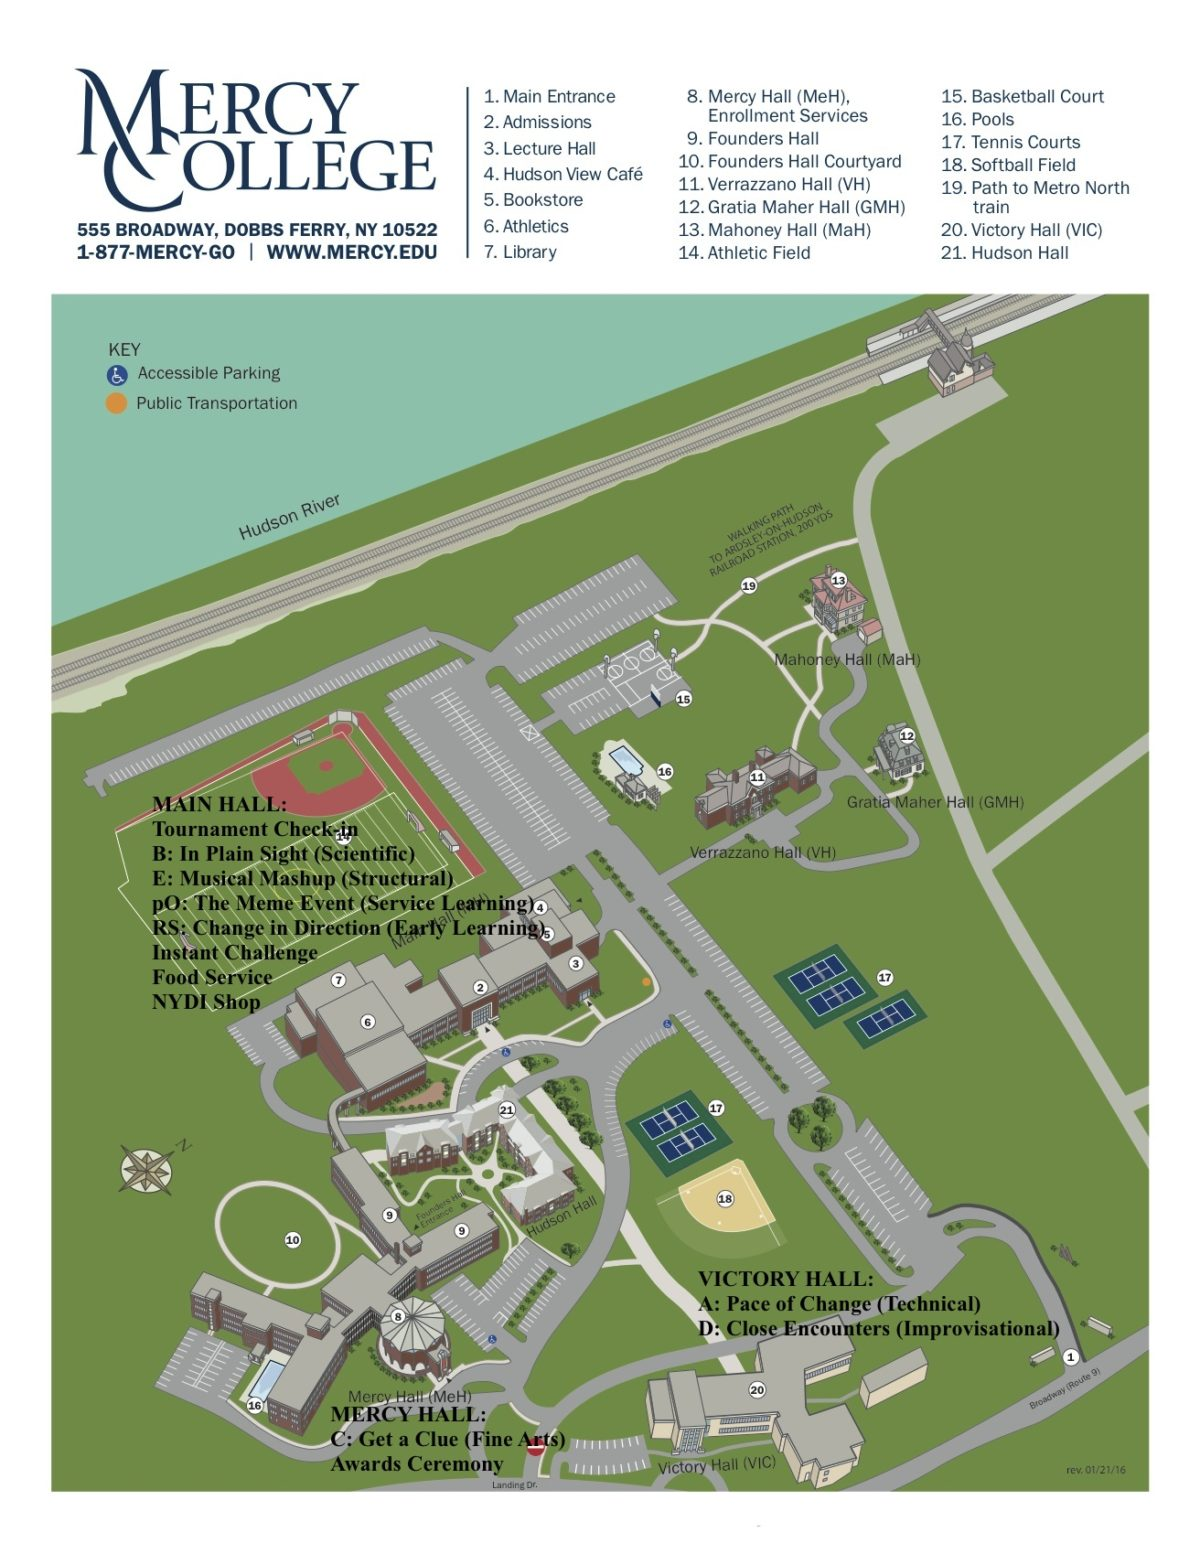 MercyCollegeMap2016 with challenges